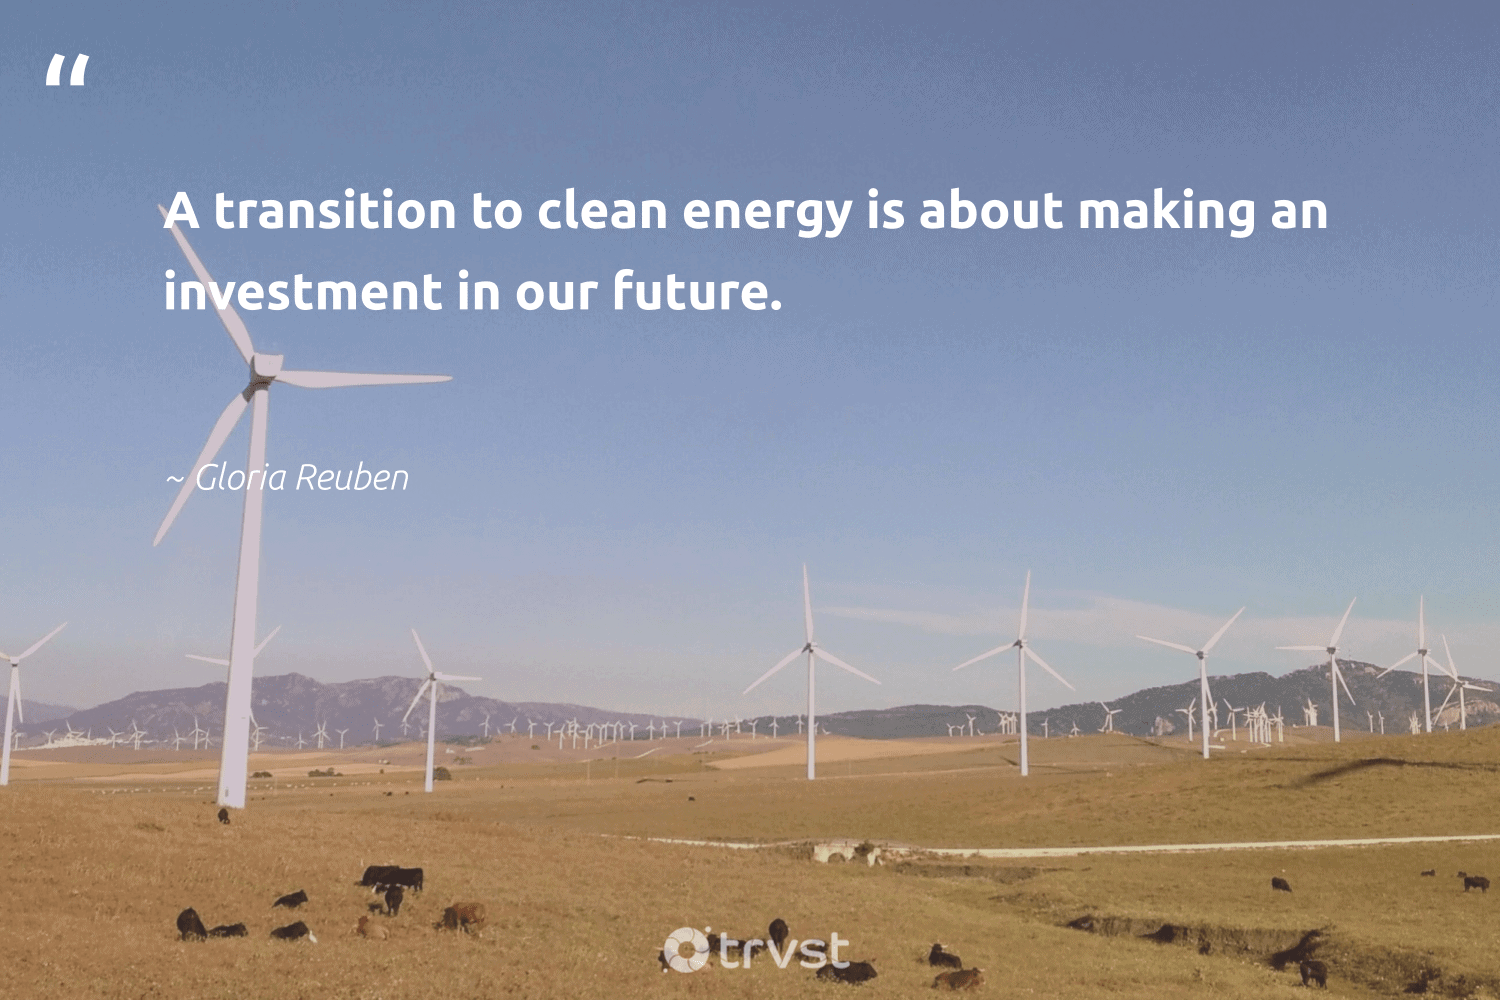 """""""A transition to clean energy is about making an investment in our future.""""  - Gloria Reuben #trvst #quotes #renewableenergy #energy #cleanenergy #renewable #ecofriendly #environment #dotherightthing #renewables #green #carbon"""